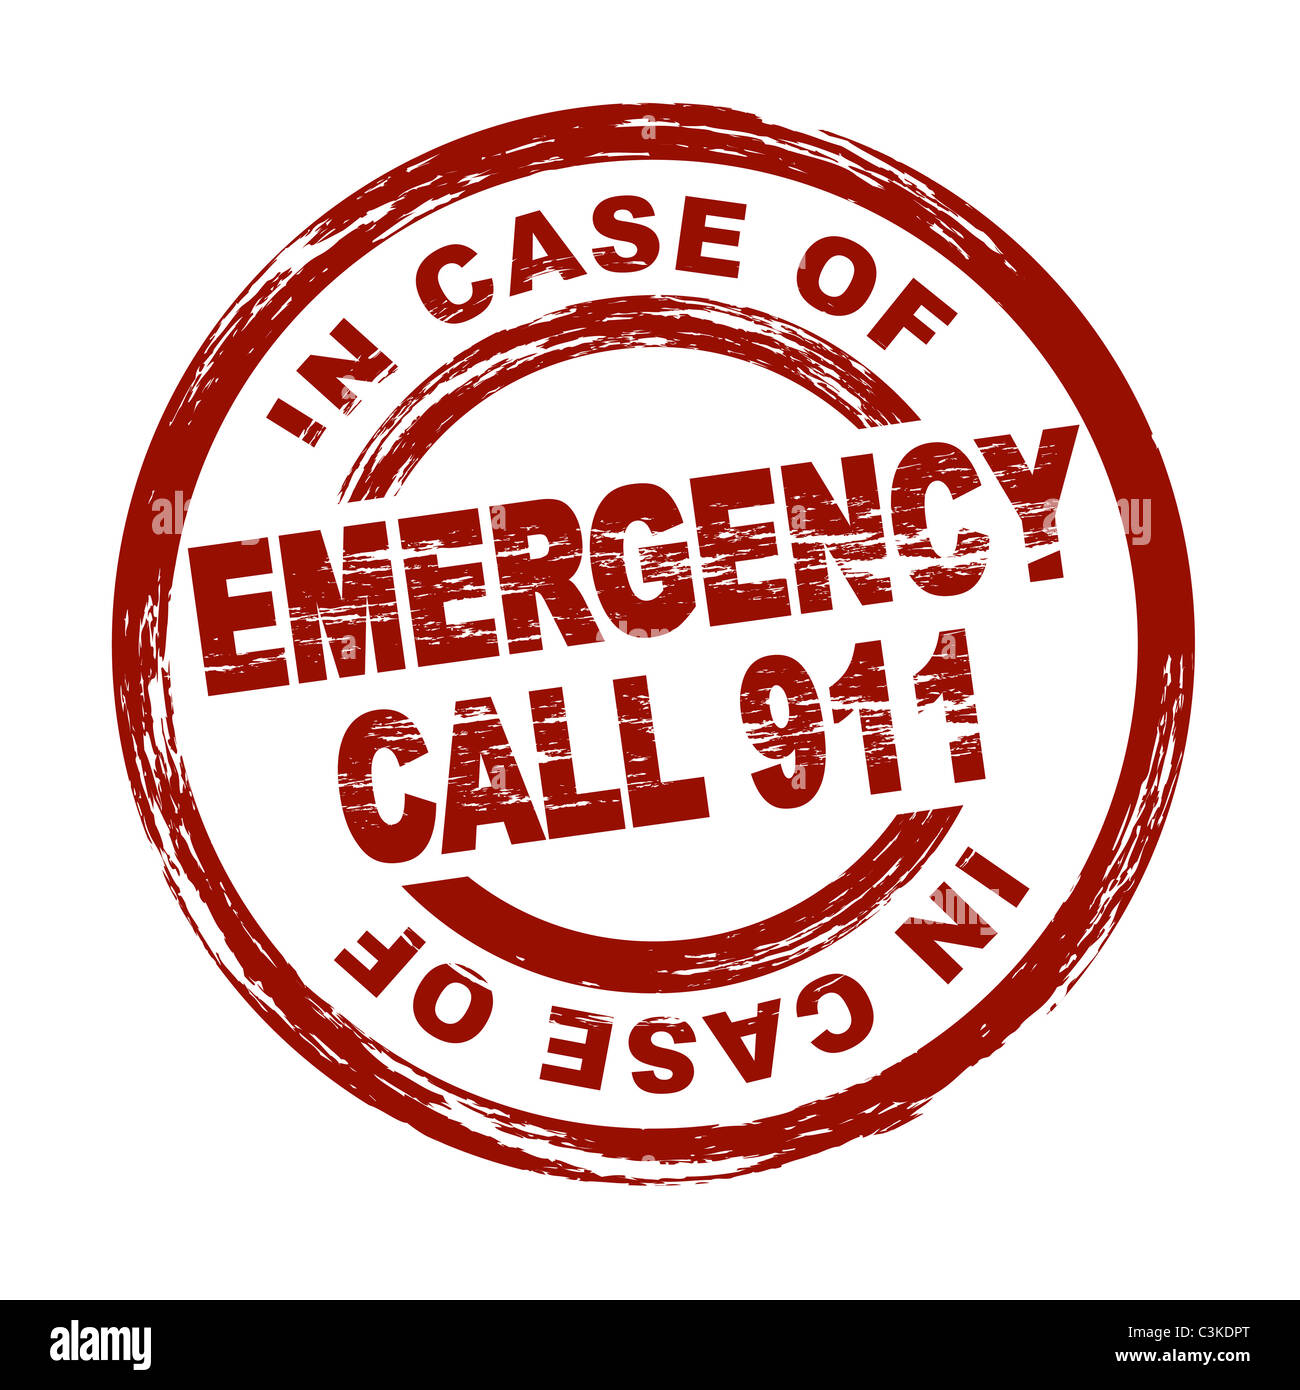 Stylized Red Stamp Showing The Term Emergency Call 911 All On White Stock Photo